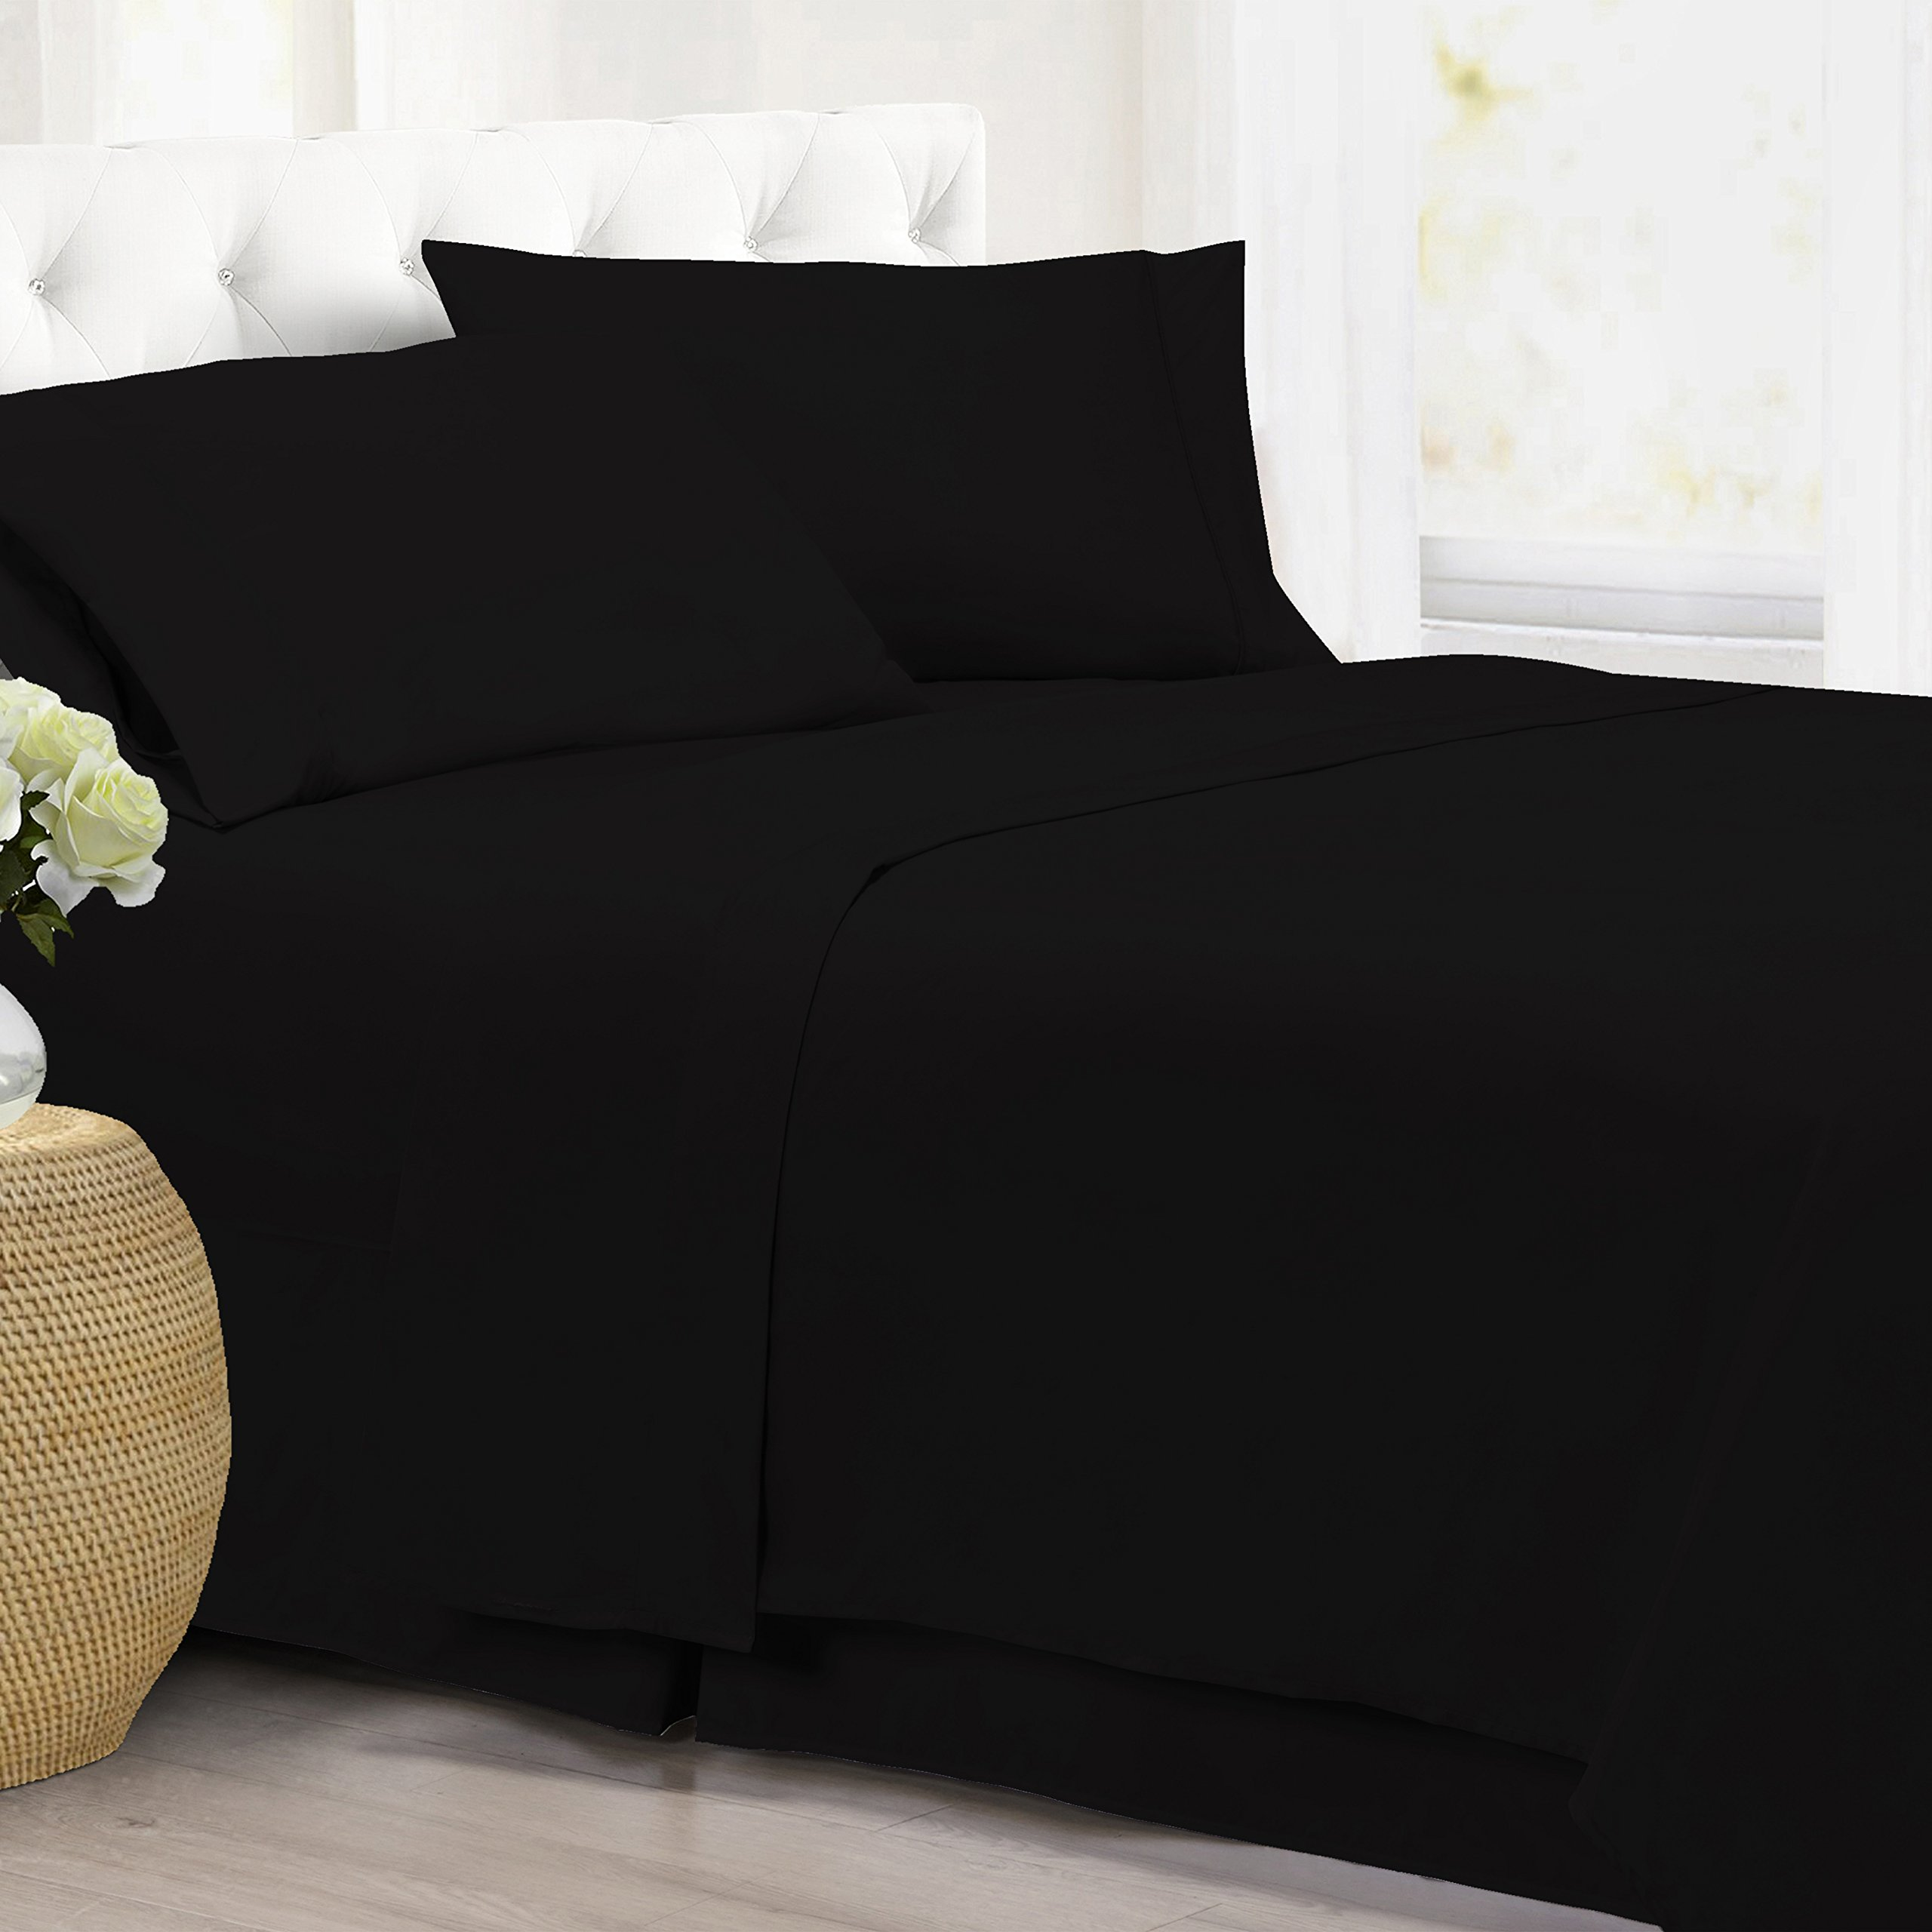 FLAT SHEET - Ultra Soft Premium Luxury Double Brushed Microfiber Bed Sheet - DEEP POCKET, BREATHABLE, Wrinkle, Fade, Stain Resistant, Hypoallergenic, Hotel Quality - (Full, Black)